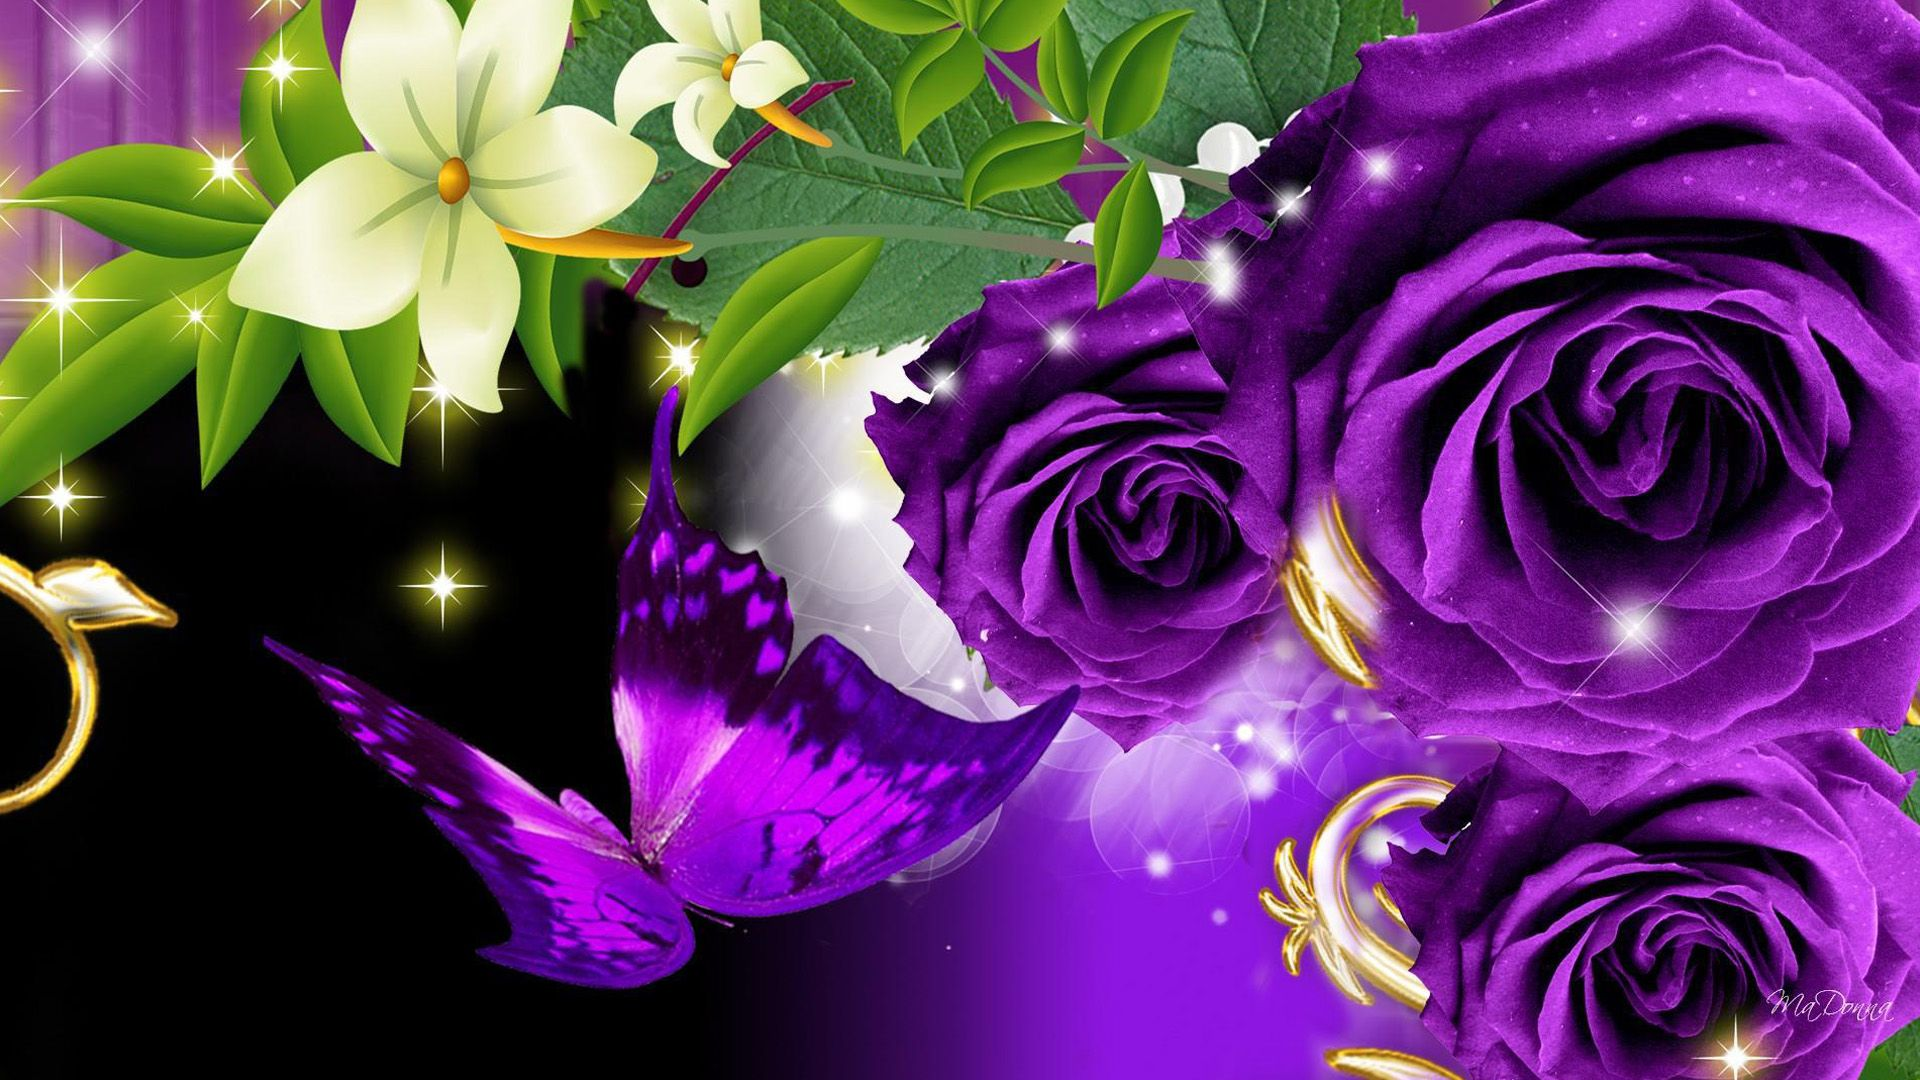 1920x1080 Background Purple Roses (#37471) - HD Wallpaper Download